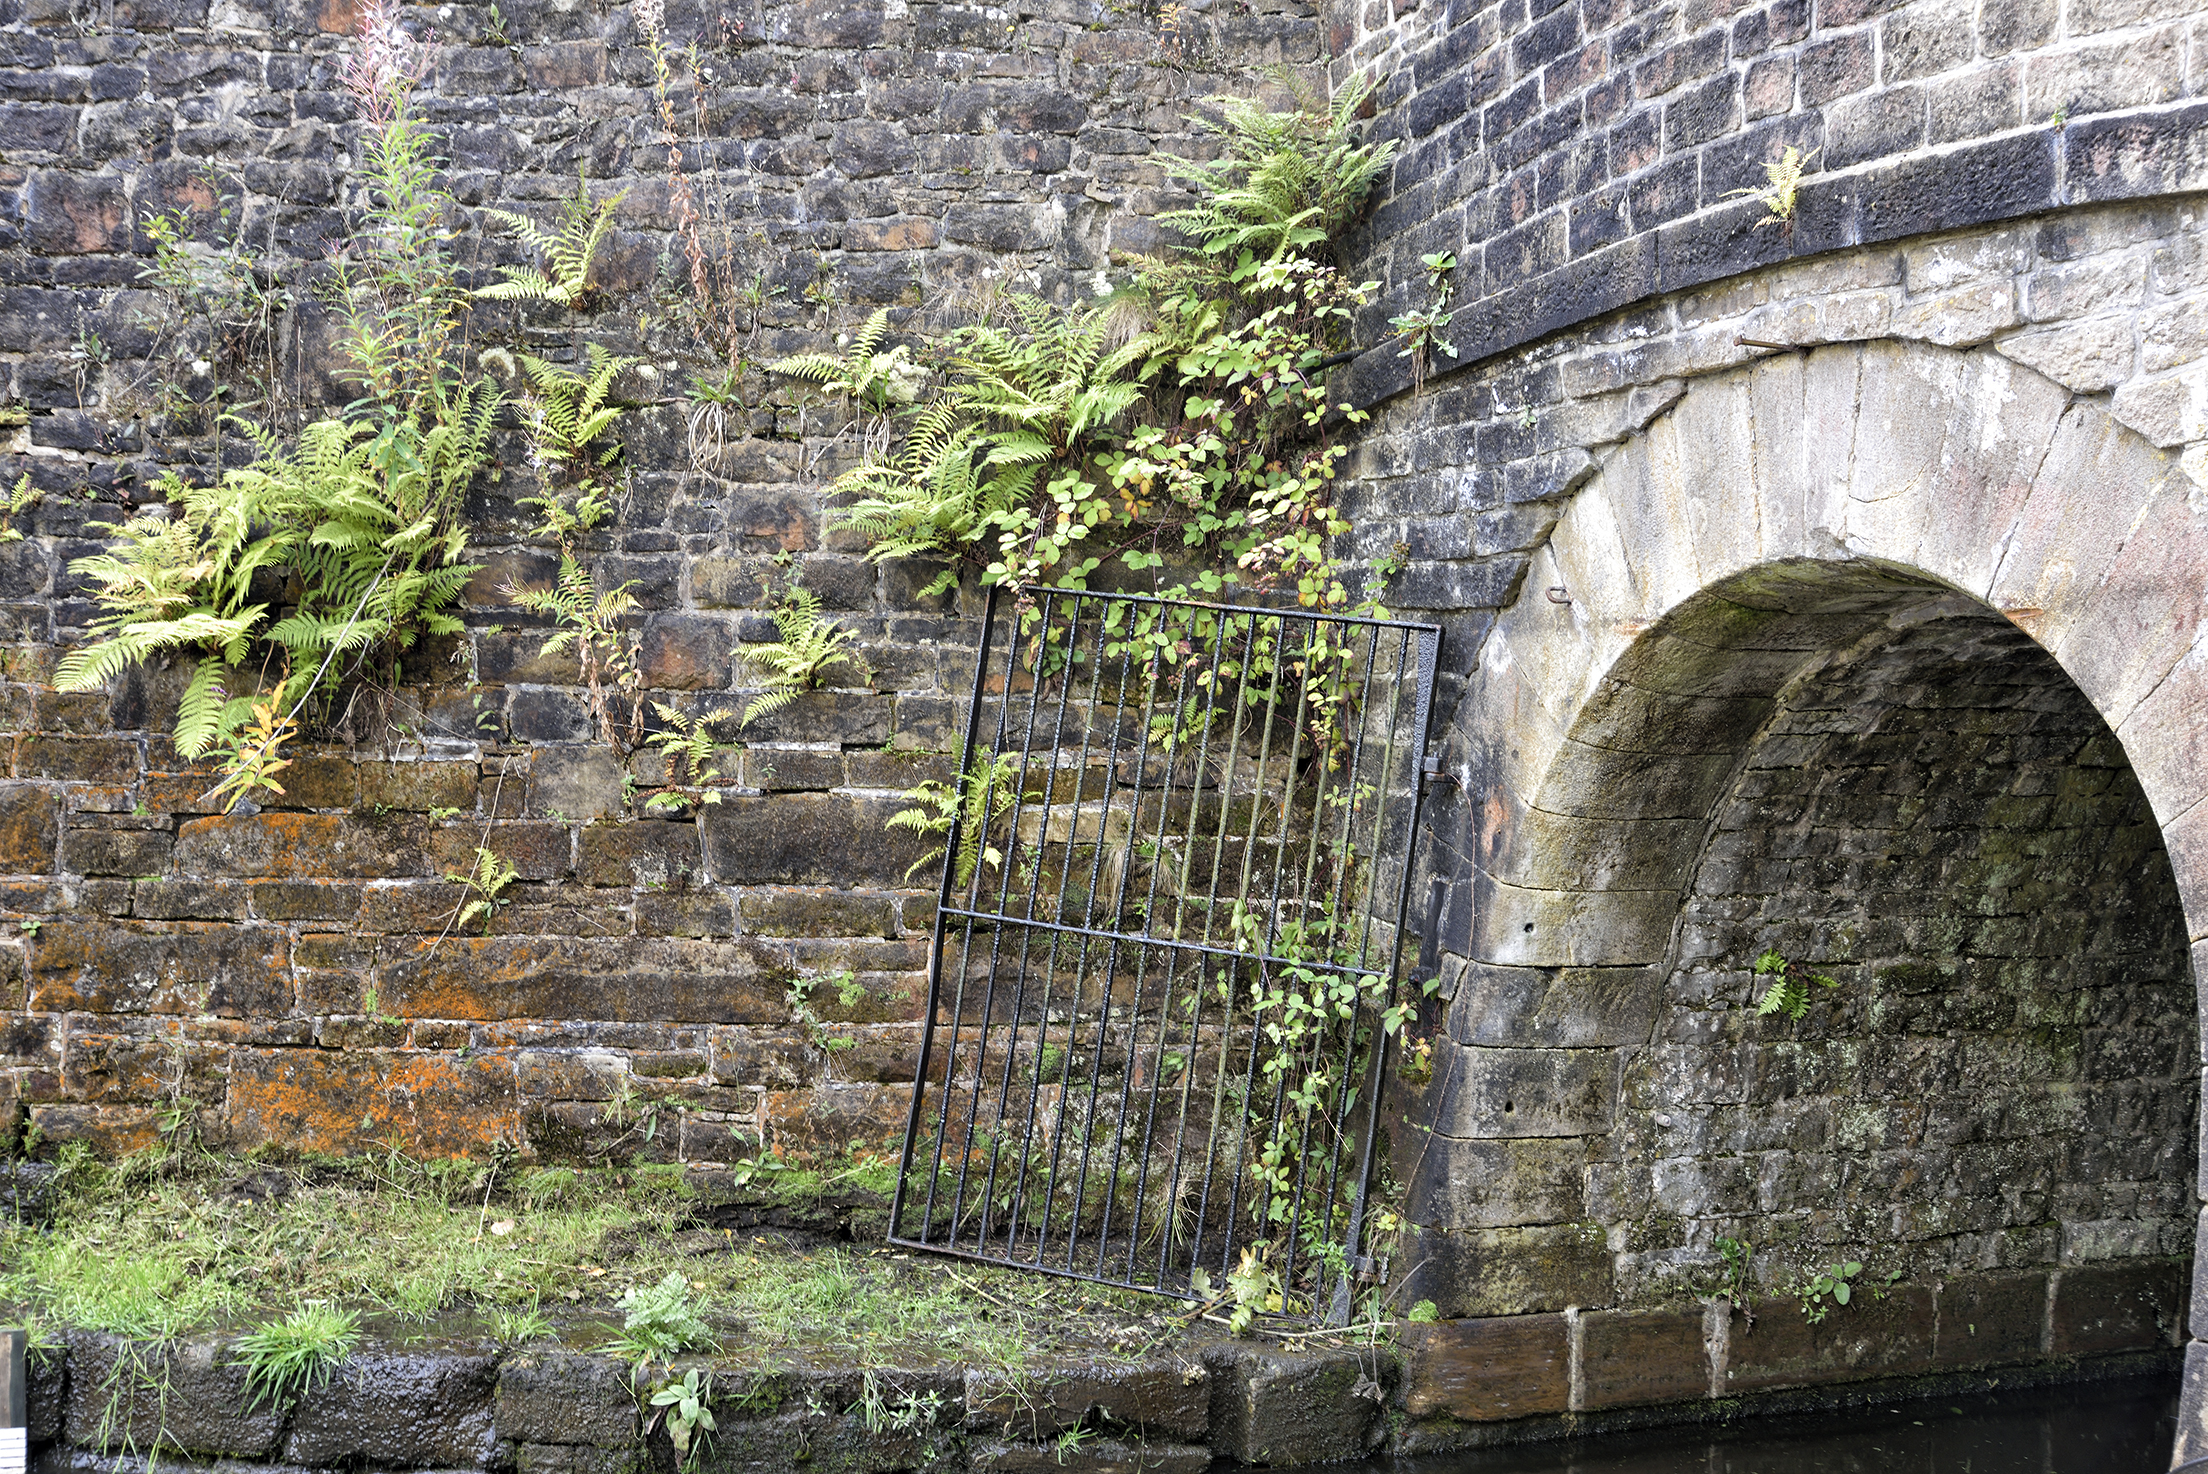 The Standedge canal Tunnels entrance, The locomotive tunnels are above and parallel